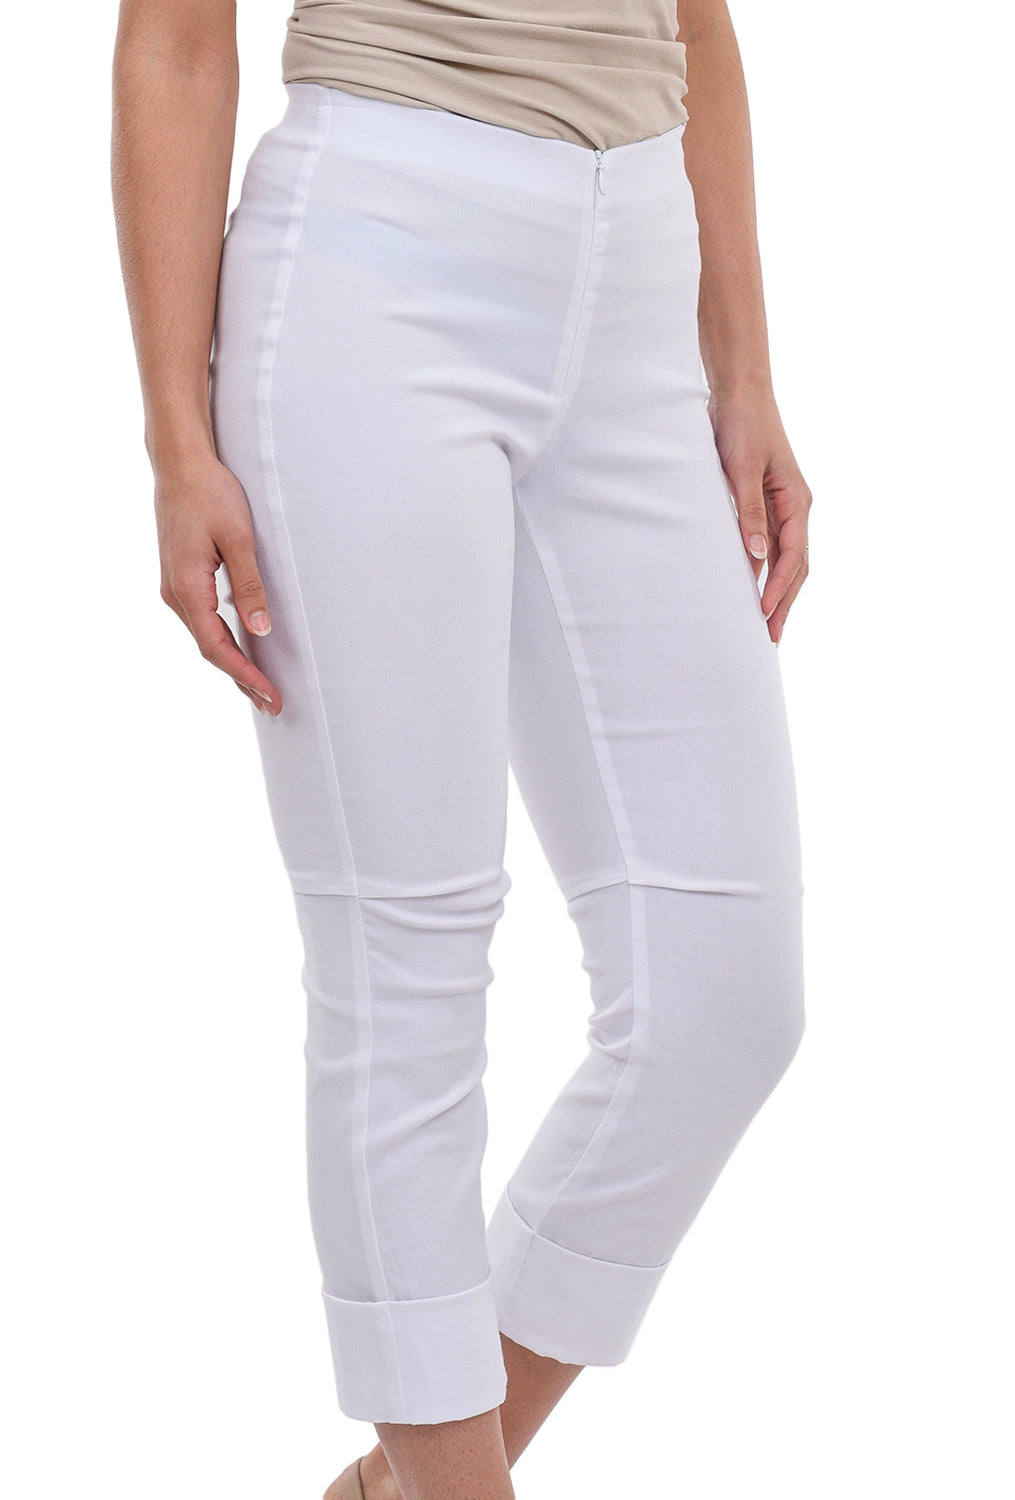 Porto New Vespa Pants, Ivory